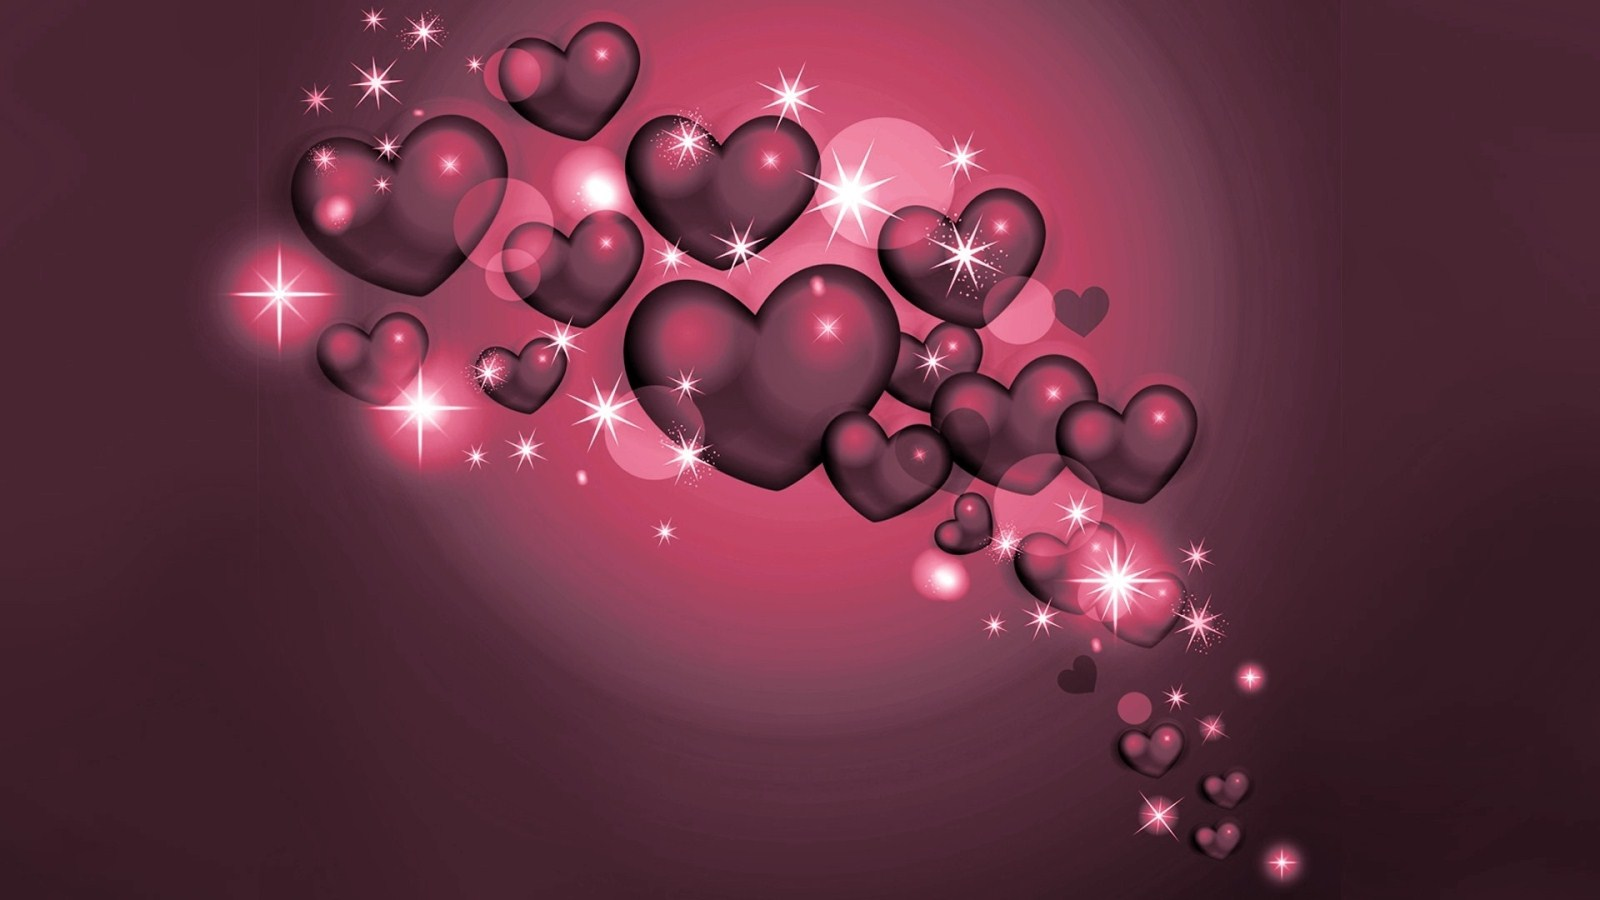 Hd Love Wallpapers Zip : 3D Love Wallpaper - WallpaperSafari